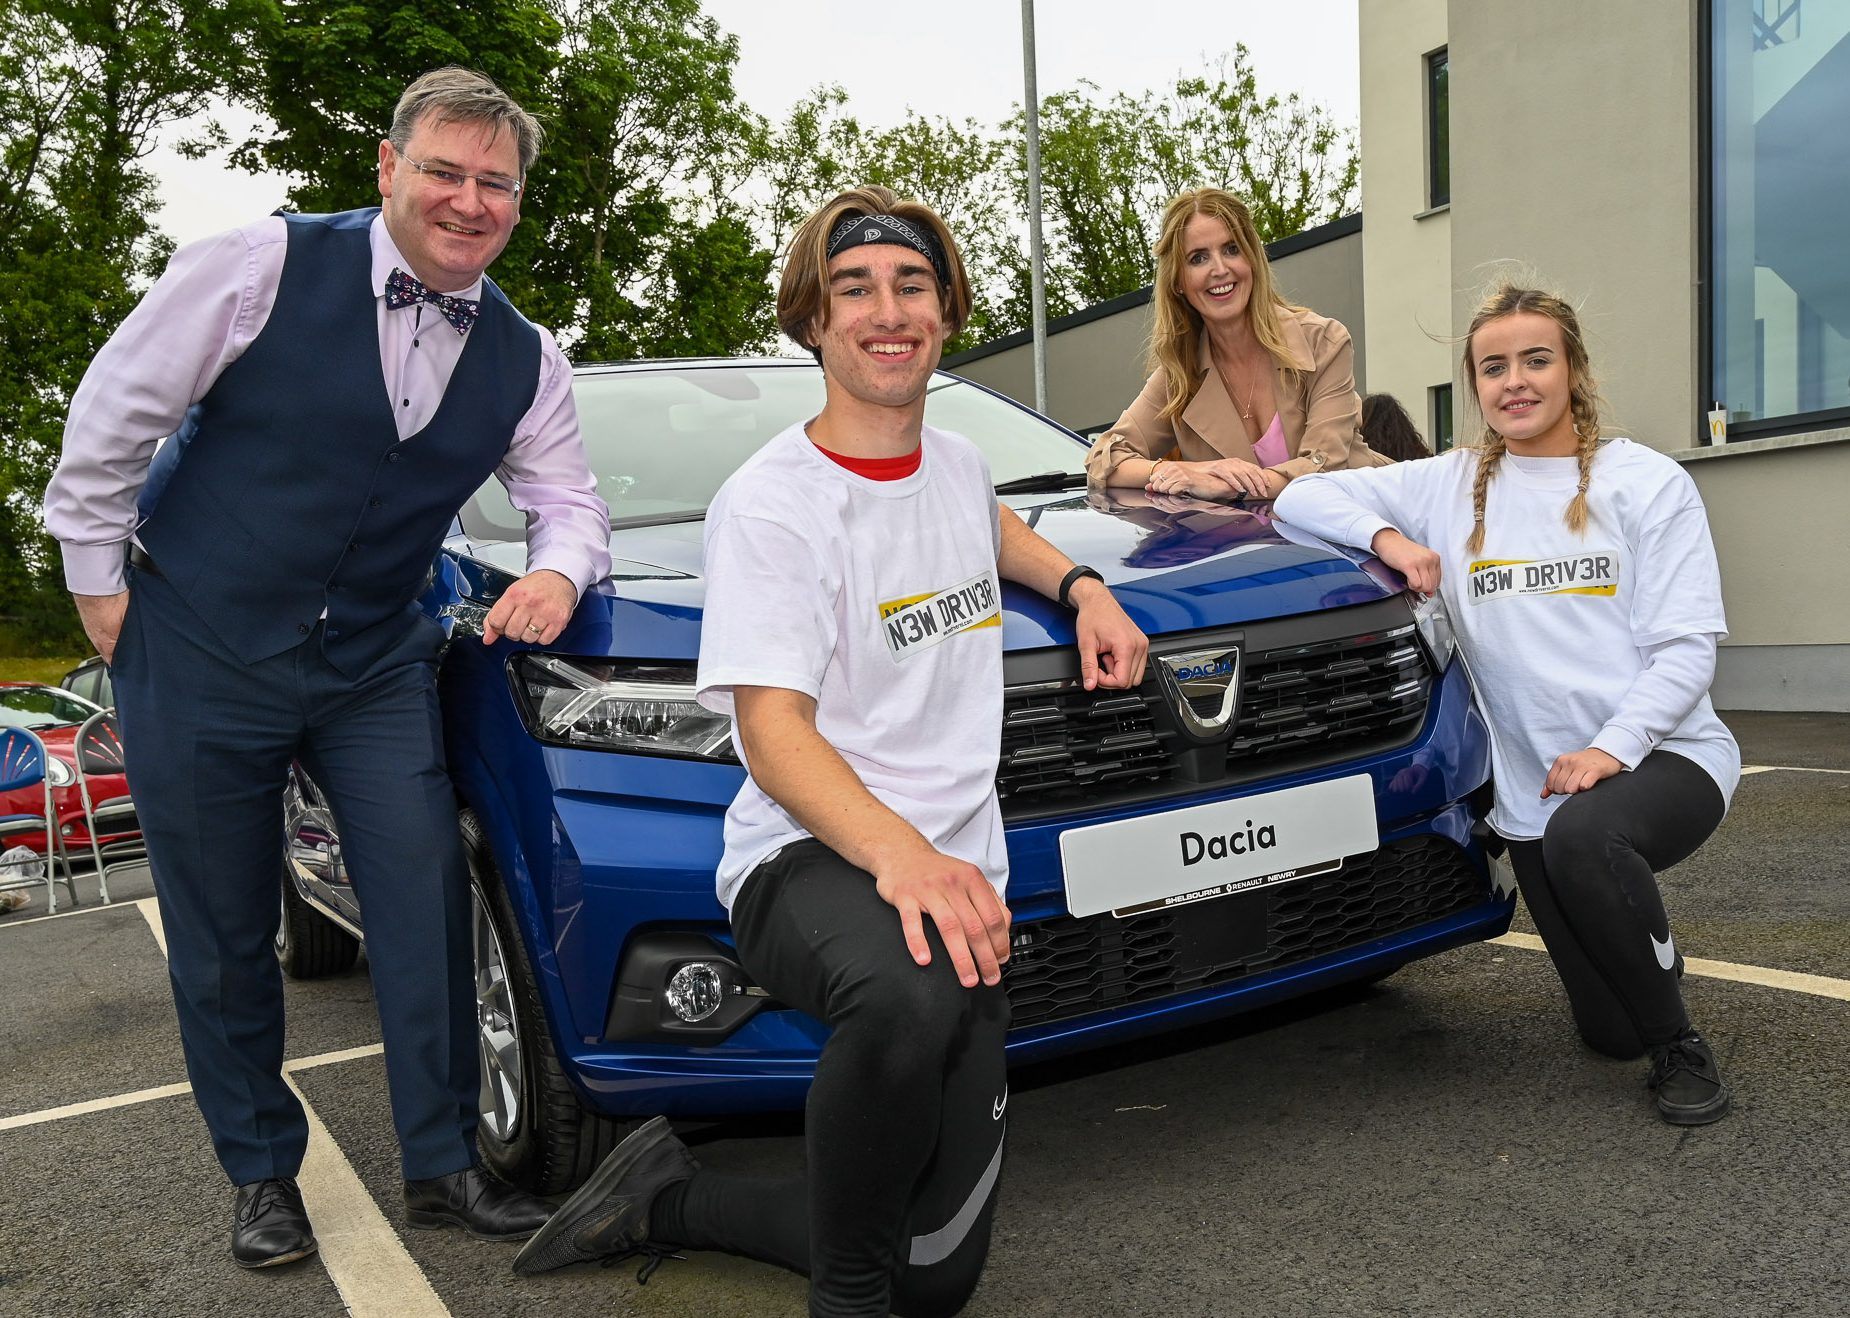 Two winners each WIN a new car at New Driver NI's 'Touch The Car' Competition sponsored by CRASH Services and JMK Solicitors.